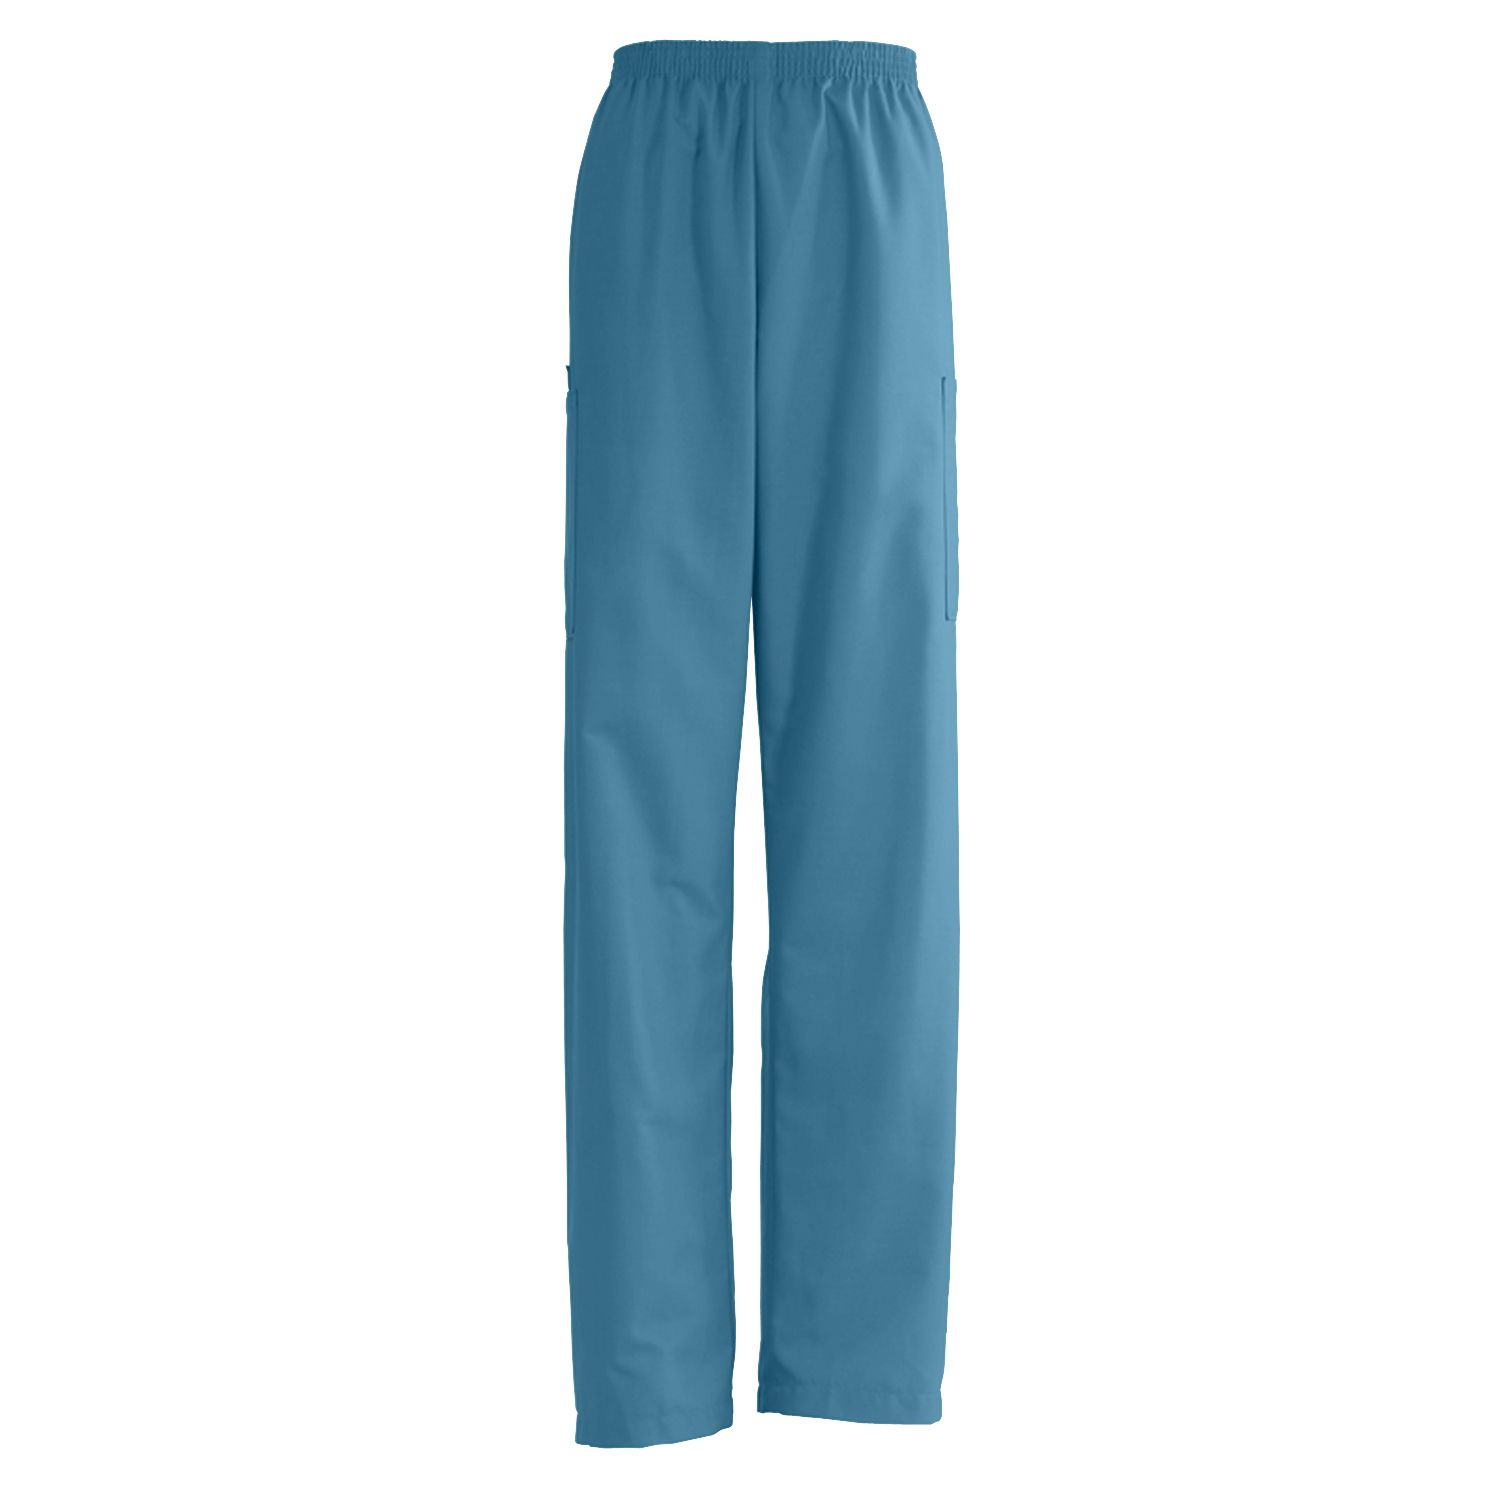 Medline AngelStat Unisex Elastic Waist Cargo Scrub Pants - Peacock, Xs, Md, Each - Model 674NBTXSM